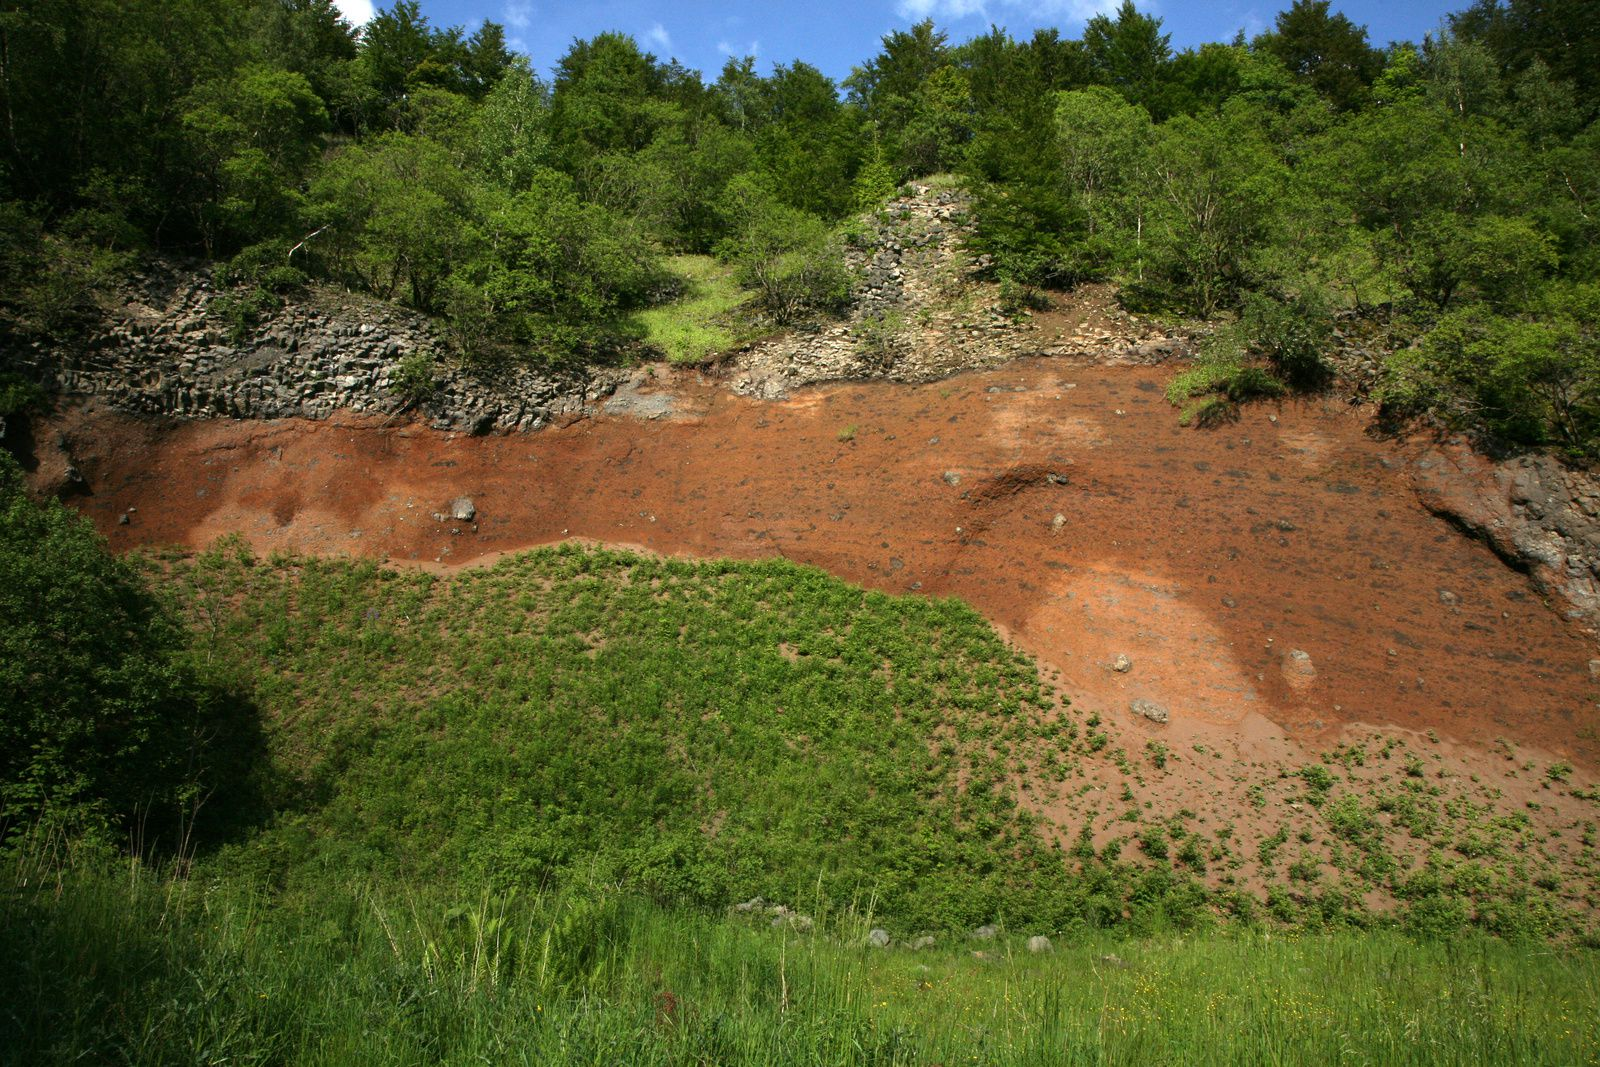 Crater Gebirgsstein - Tuff and basalt - photo © Bernard Duyck 05.2014